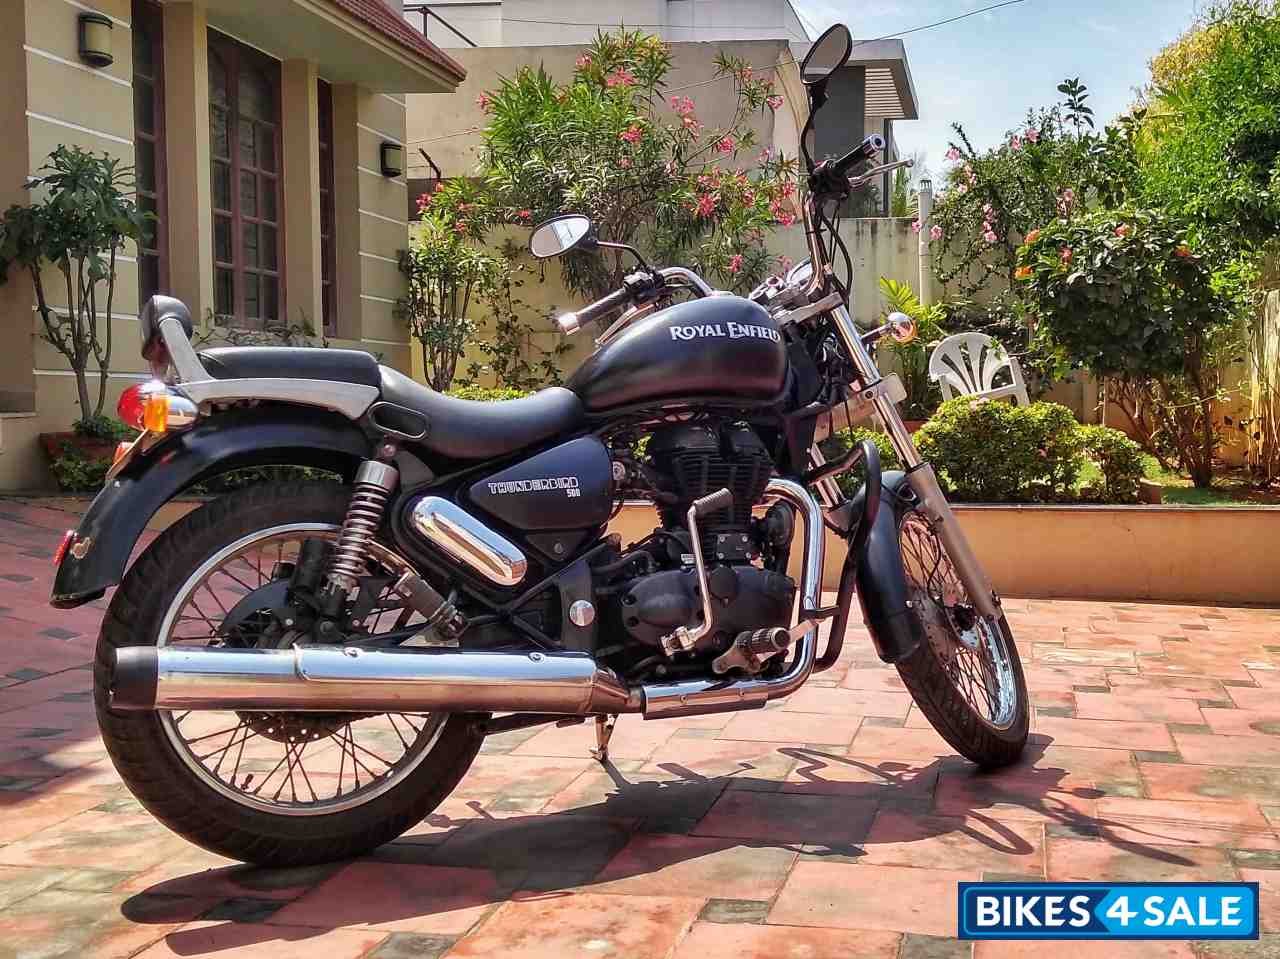 Matte Black Royal Enfield Thunderbird 500 Picture 4 Bike Id 164822 Bike Located In Chennai Bikes4sale